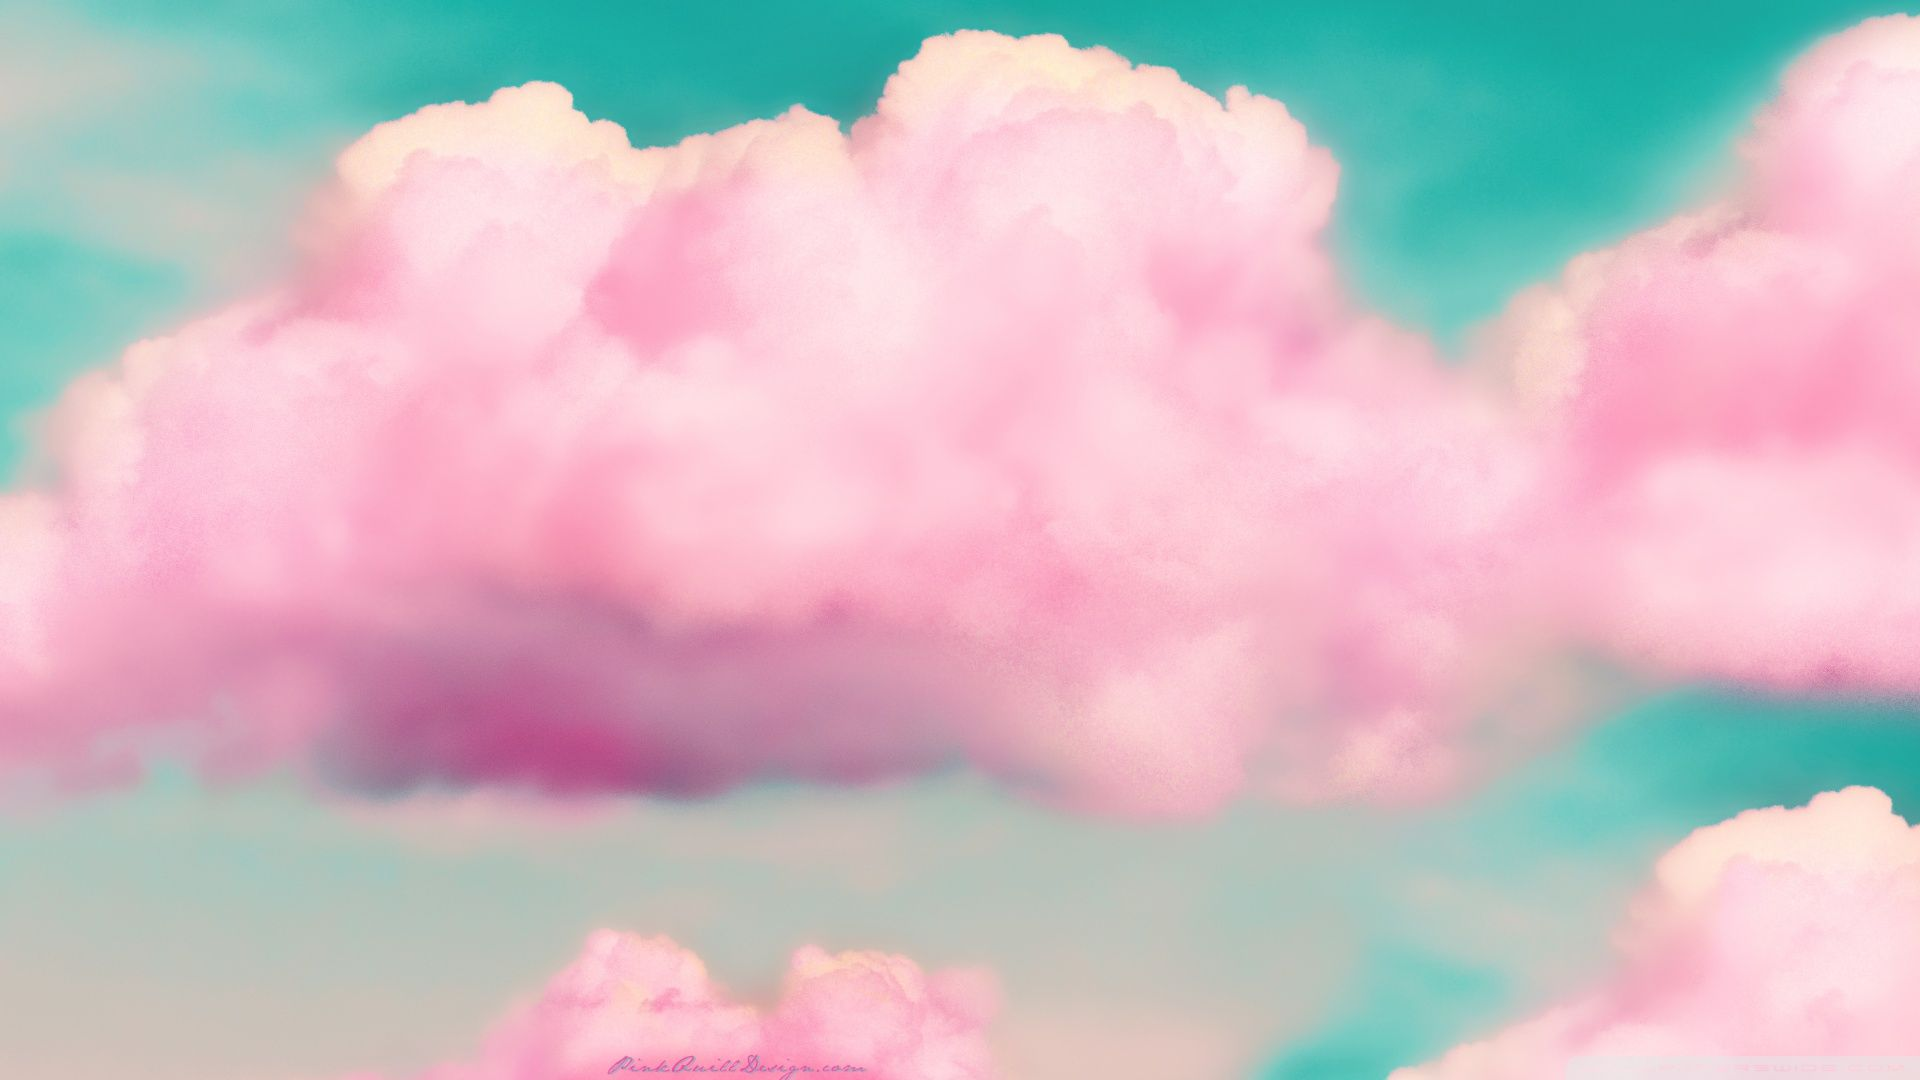 Aesthetic Pink Desktop Wallpapers Top Free Aesthetic Pink